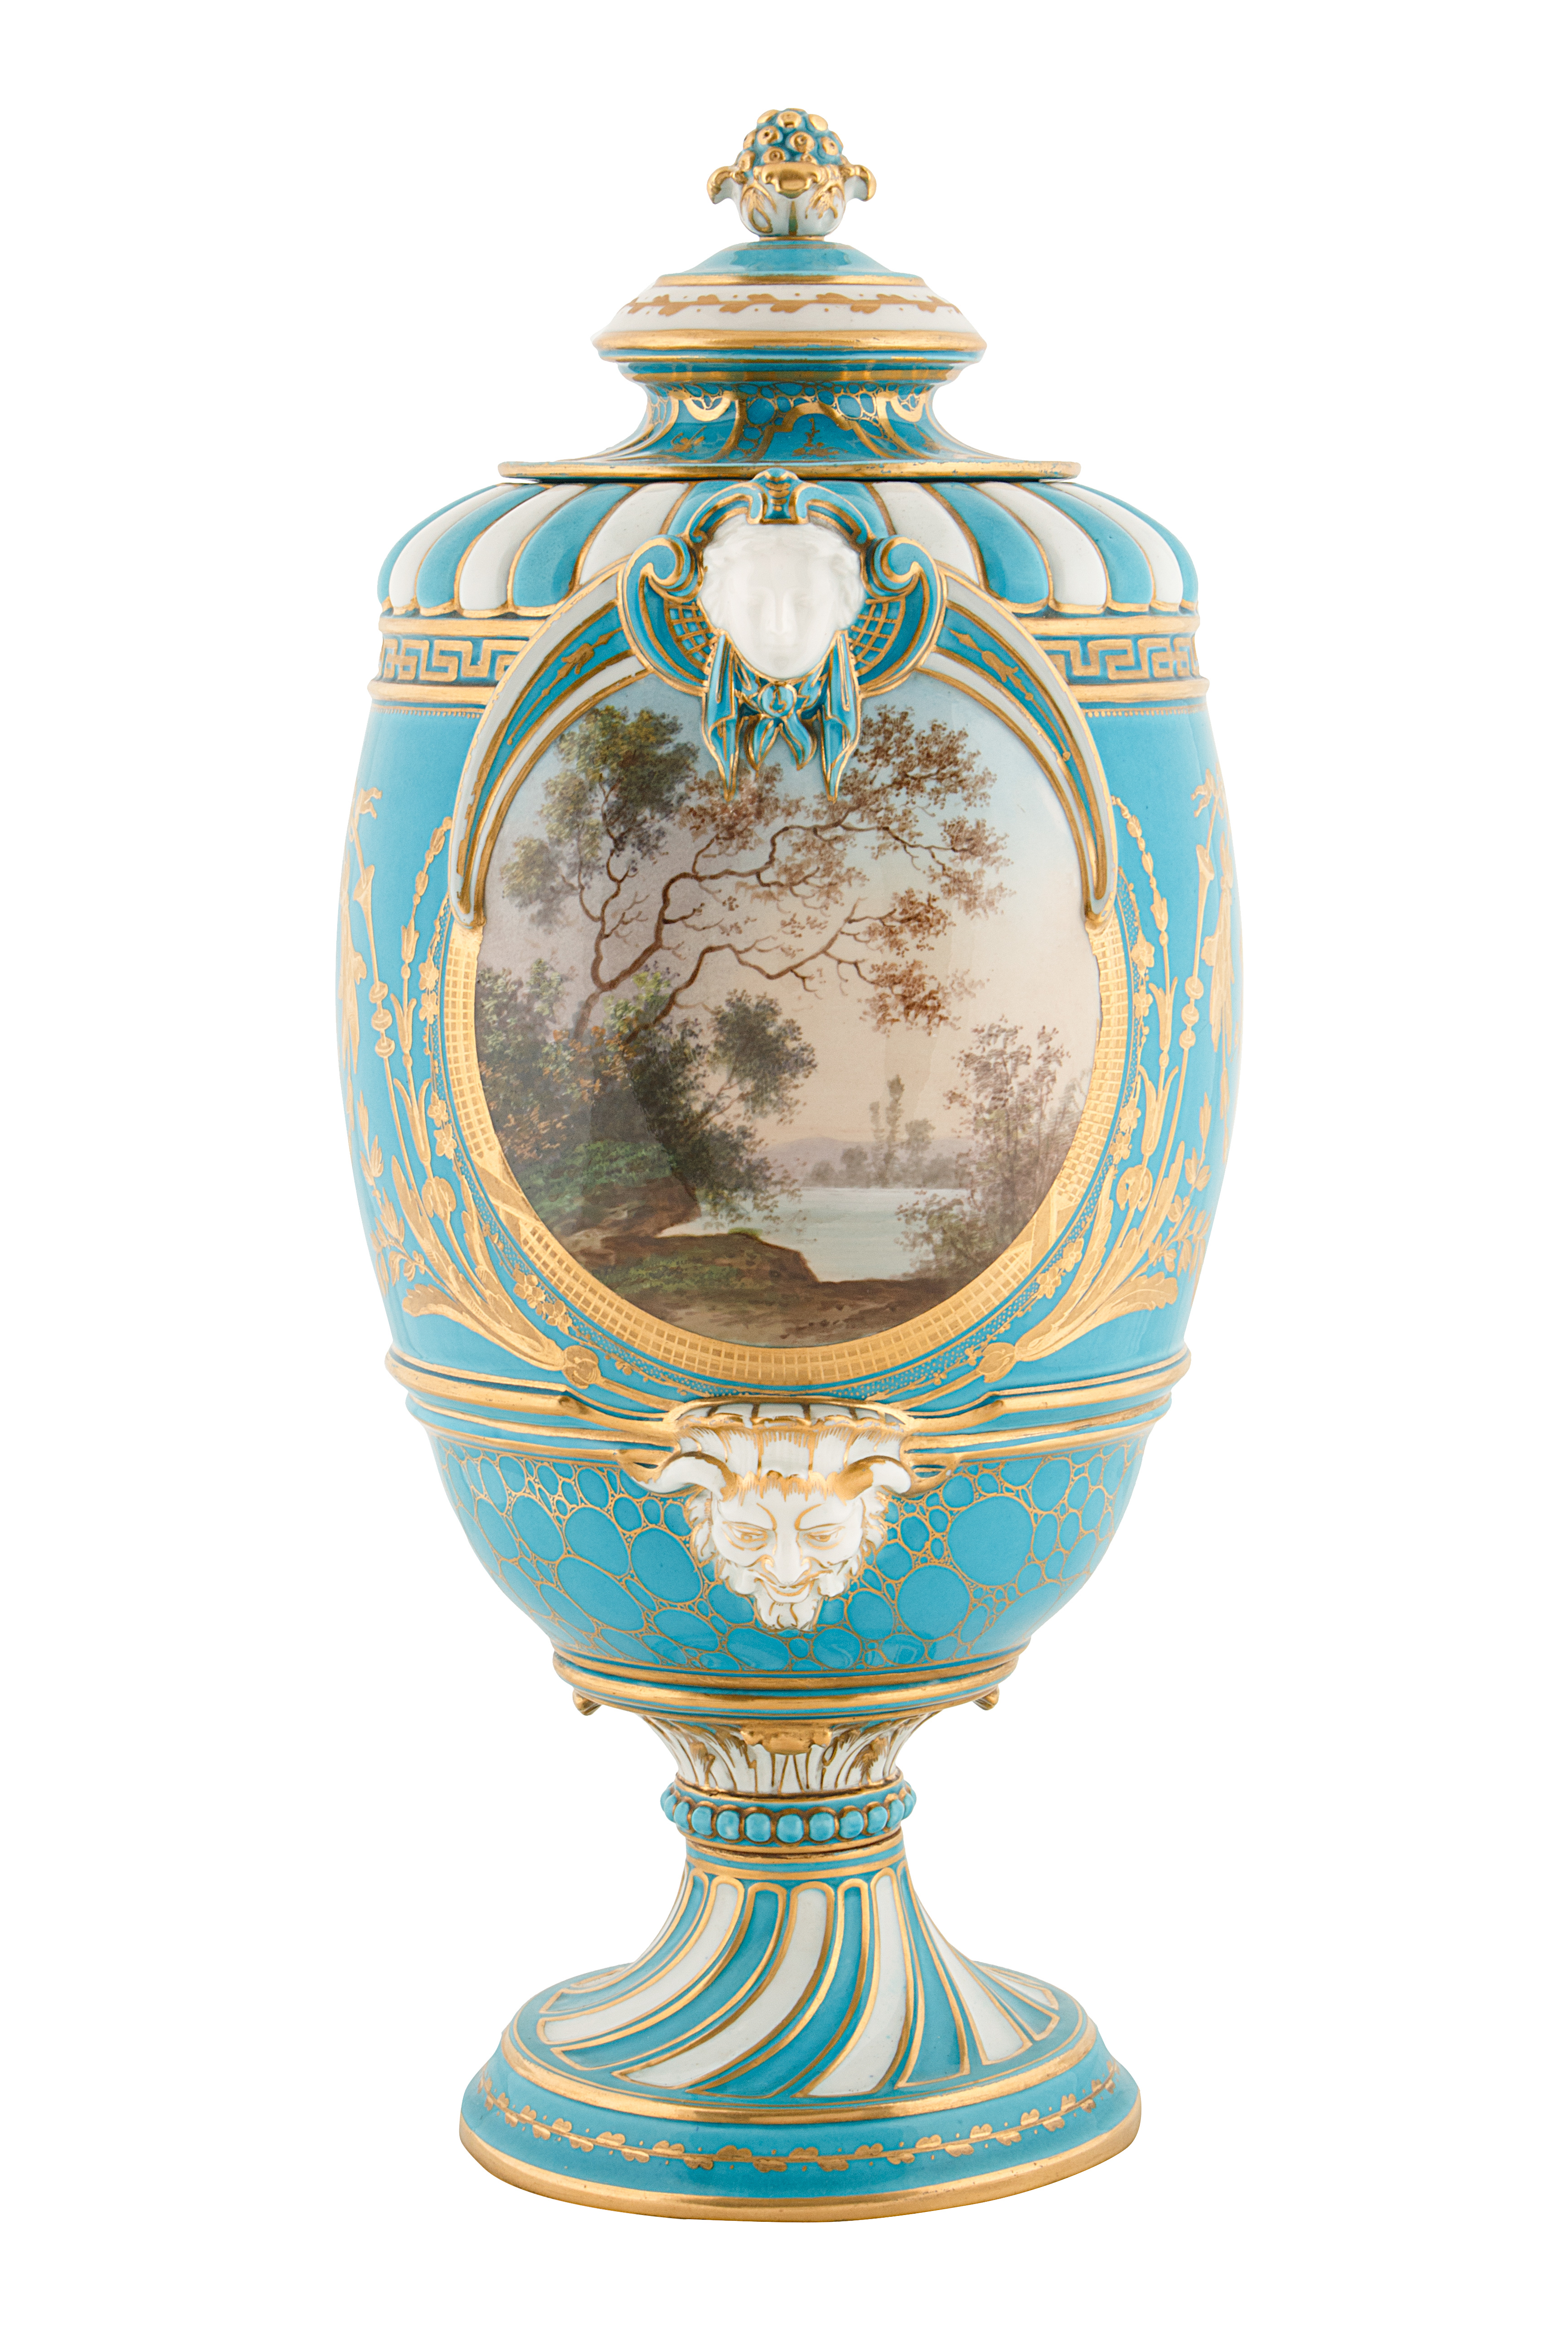 19TH CENTURY FRENCH SEVRE-STYLE PORCELAIN URNS - Image 5 of 6